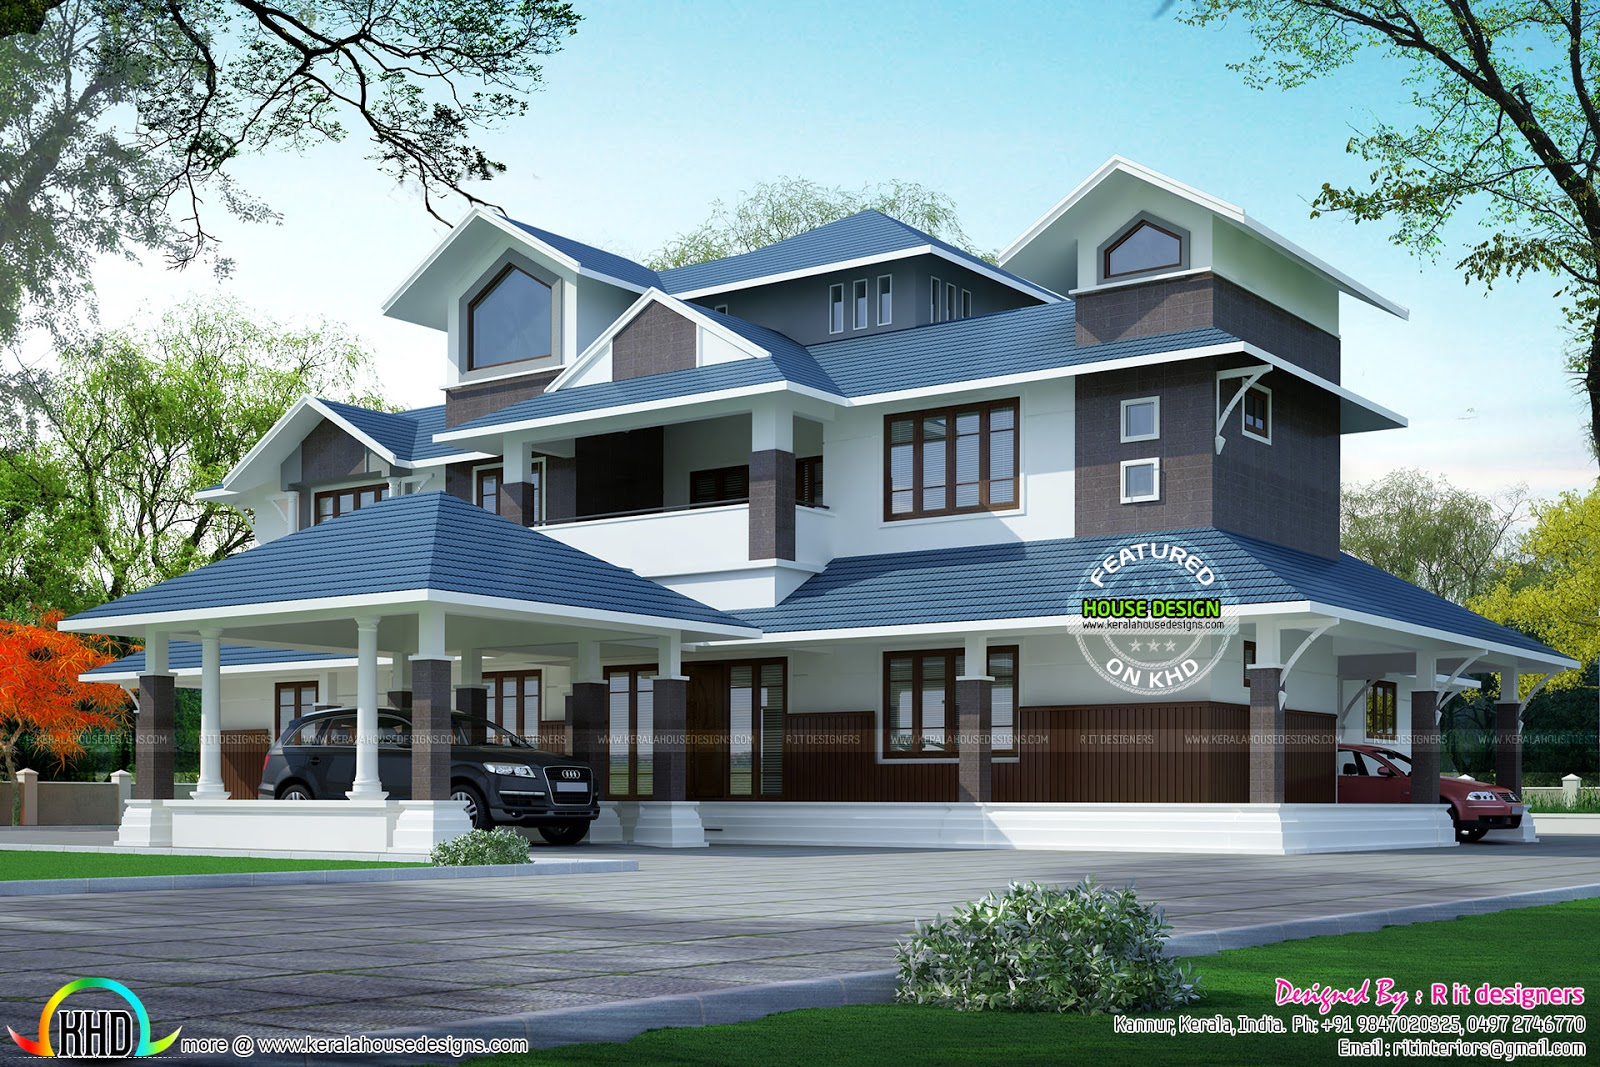 Sloped roof house plans in india for Sloped roof house plans in india